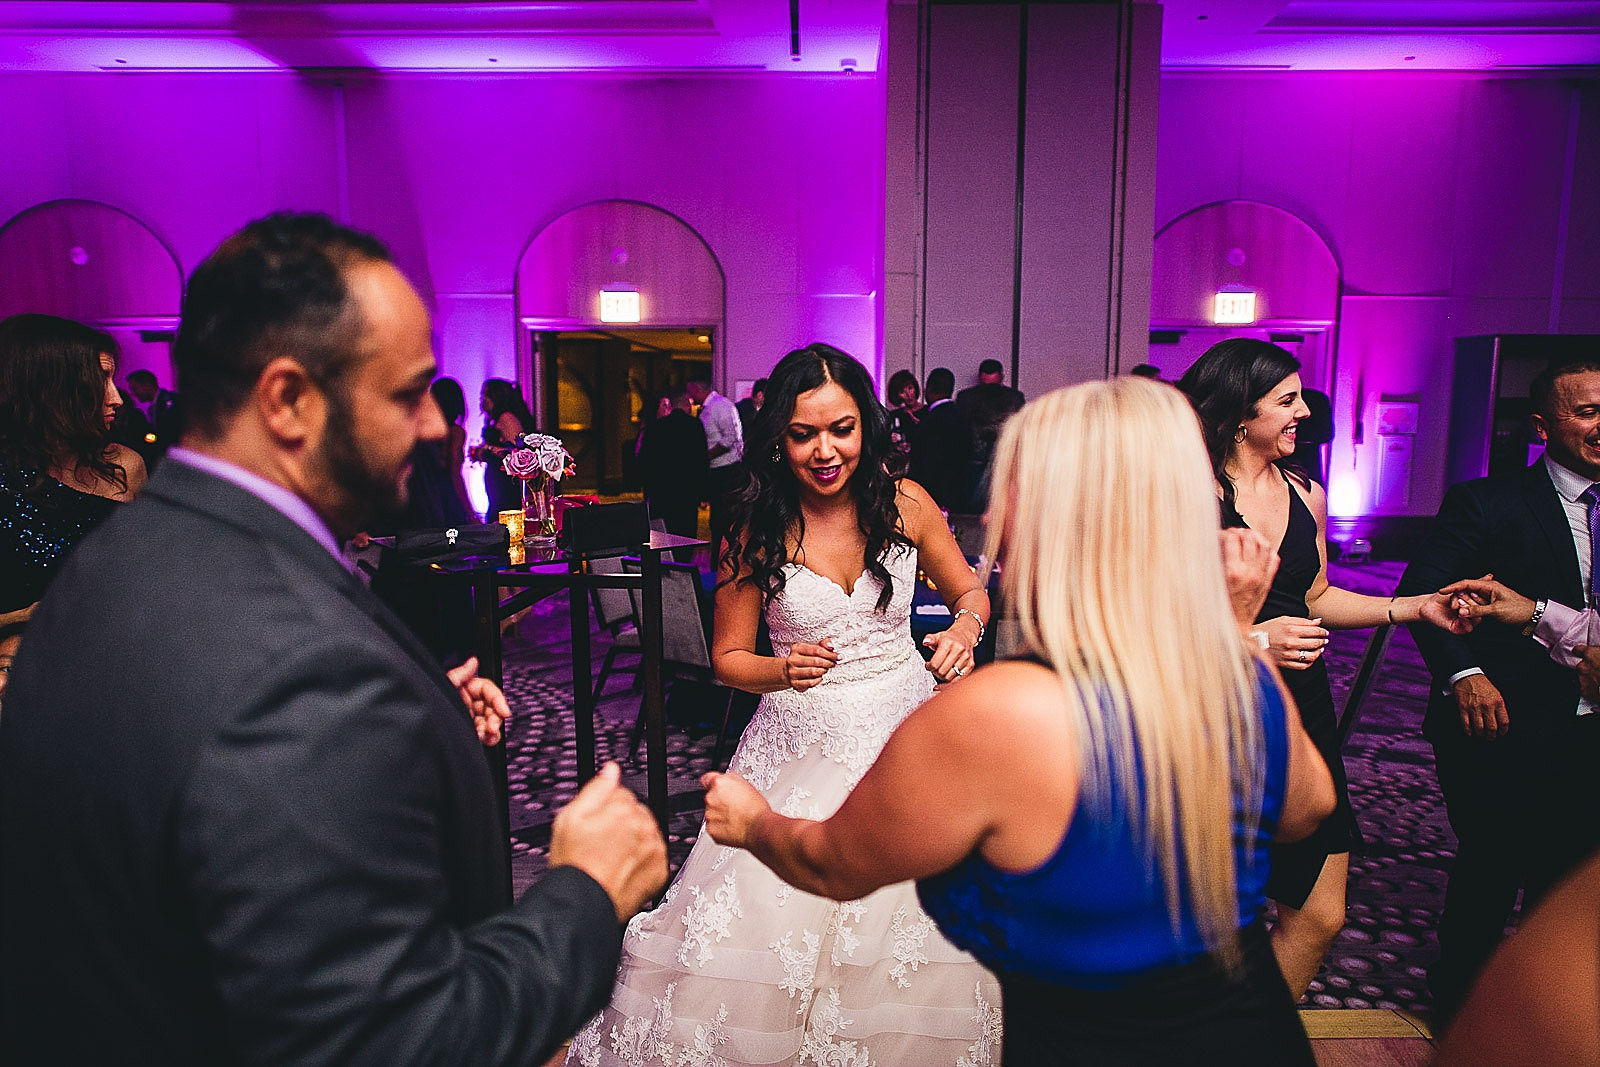 68 bride dancing at wedding reception - LondonHouse Wedding Photos // Mari + Kevin